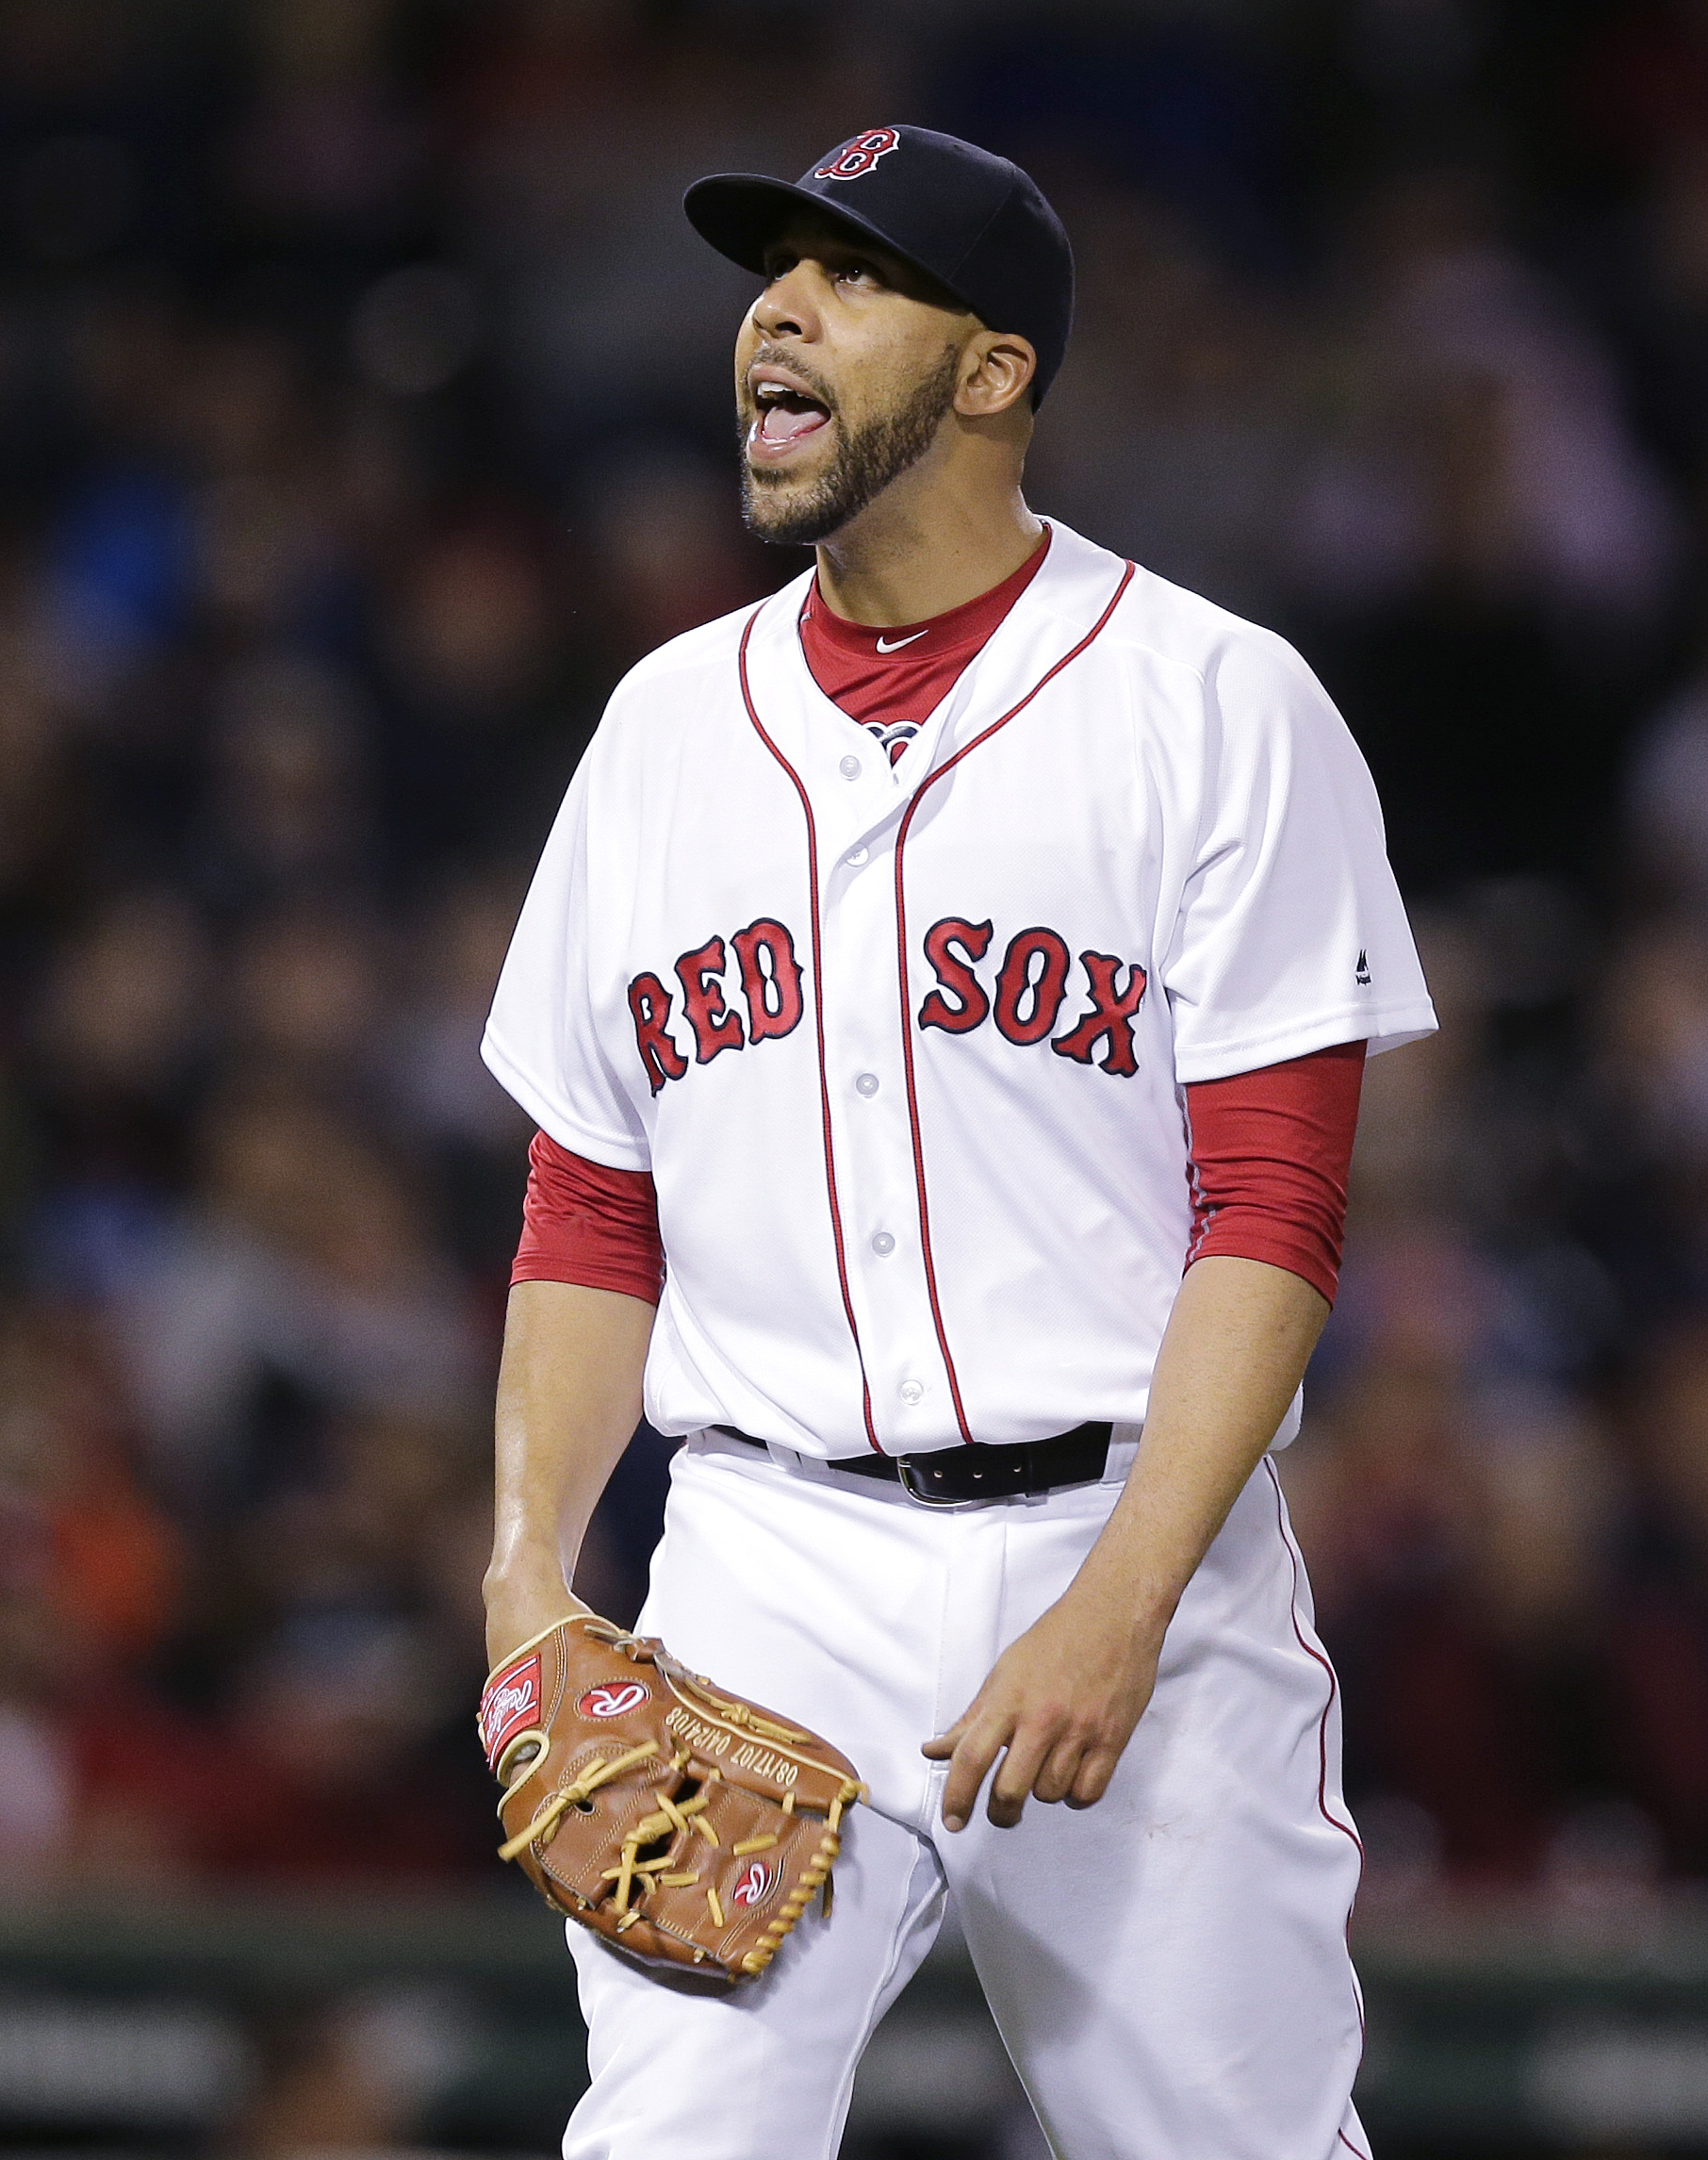 Boston Red Sox starting pitcher David Price yells as he heads to the dugout after pitching the sixth inning of a baseball game against the Colorado Rockies in Boston, Tuesday, May 24, 2016. (AP Photo/Charles Krupa)